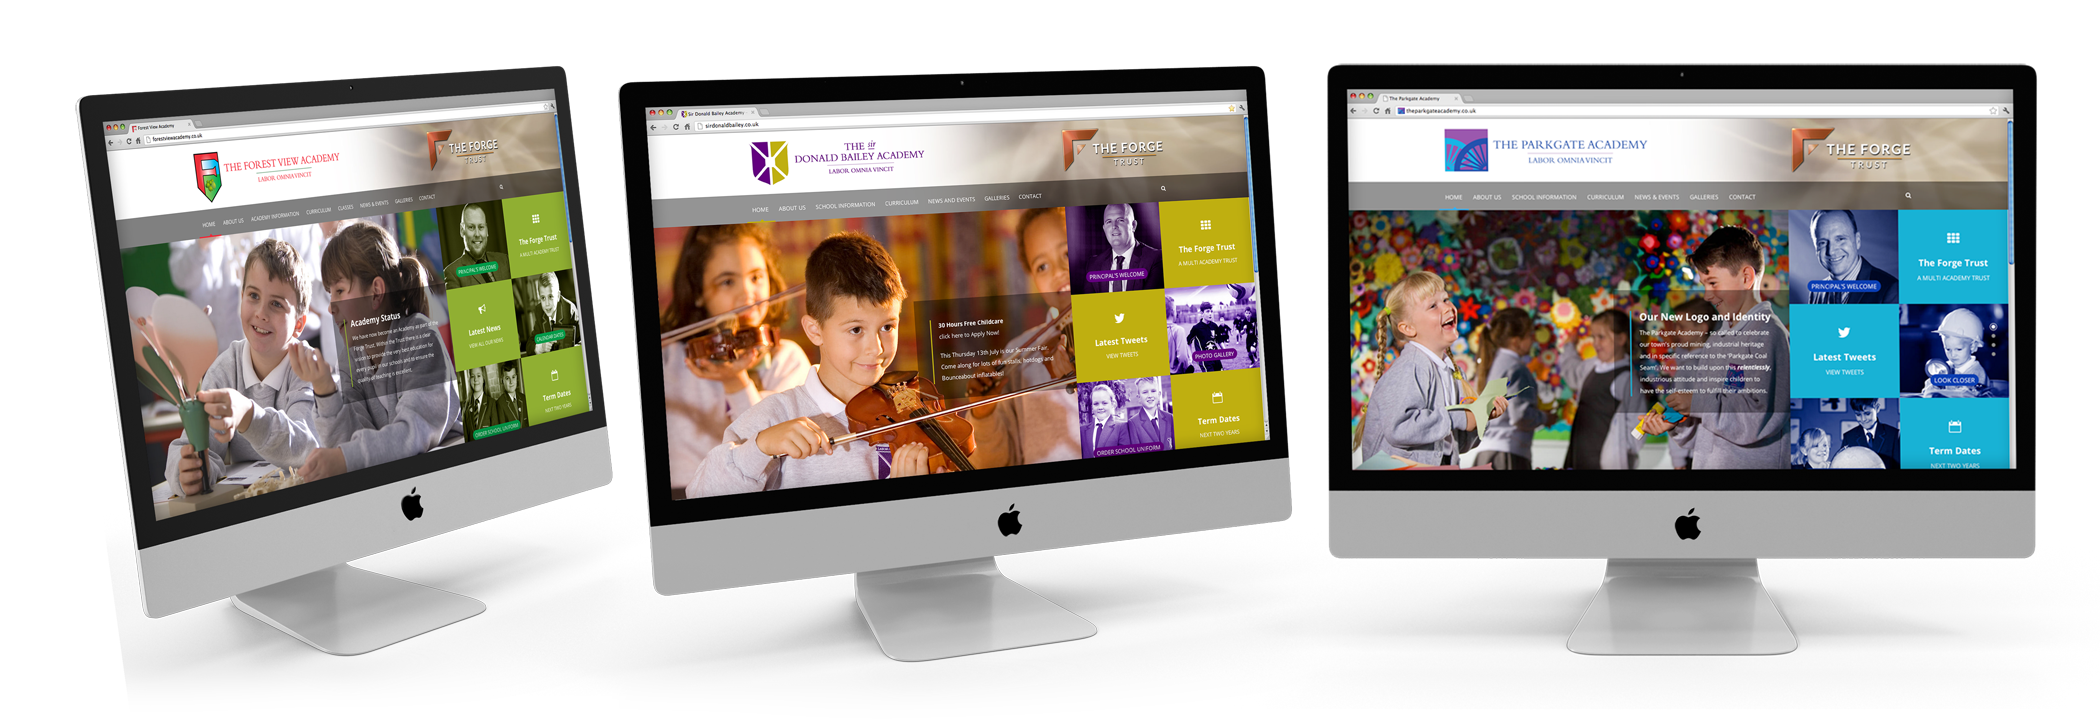 multi academy website designs